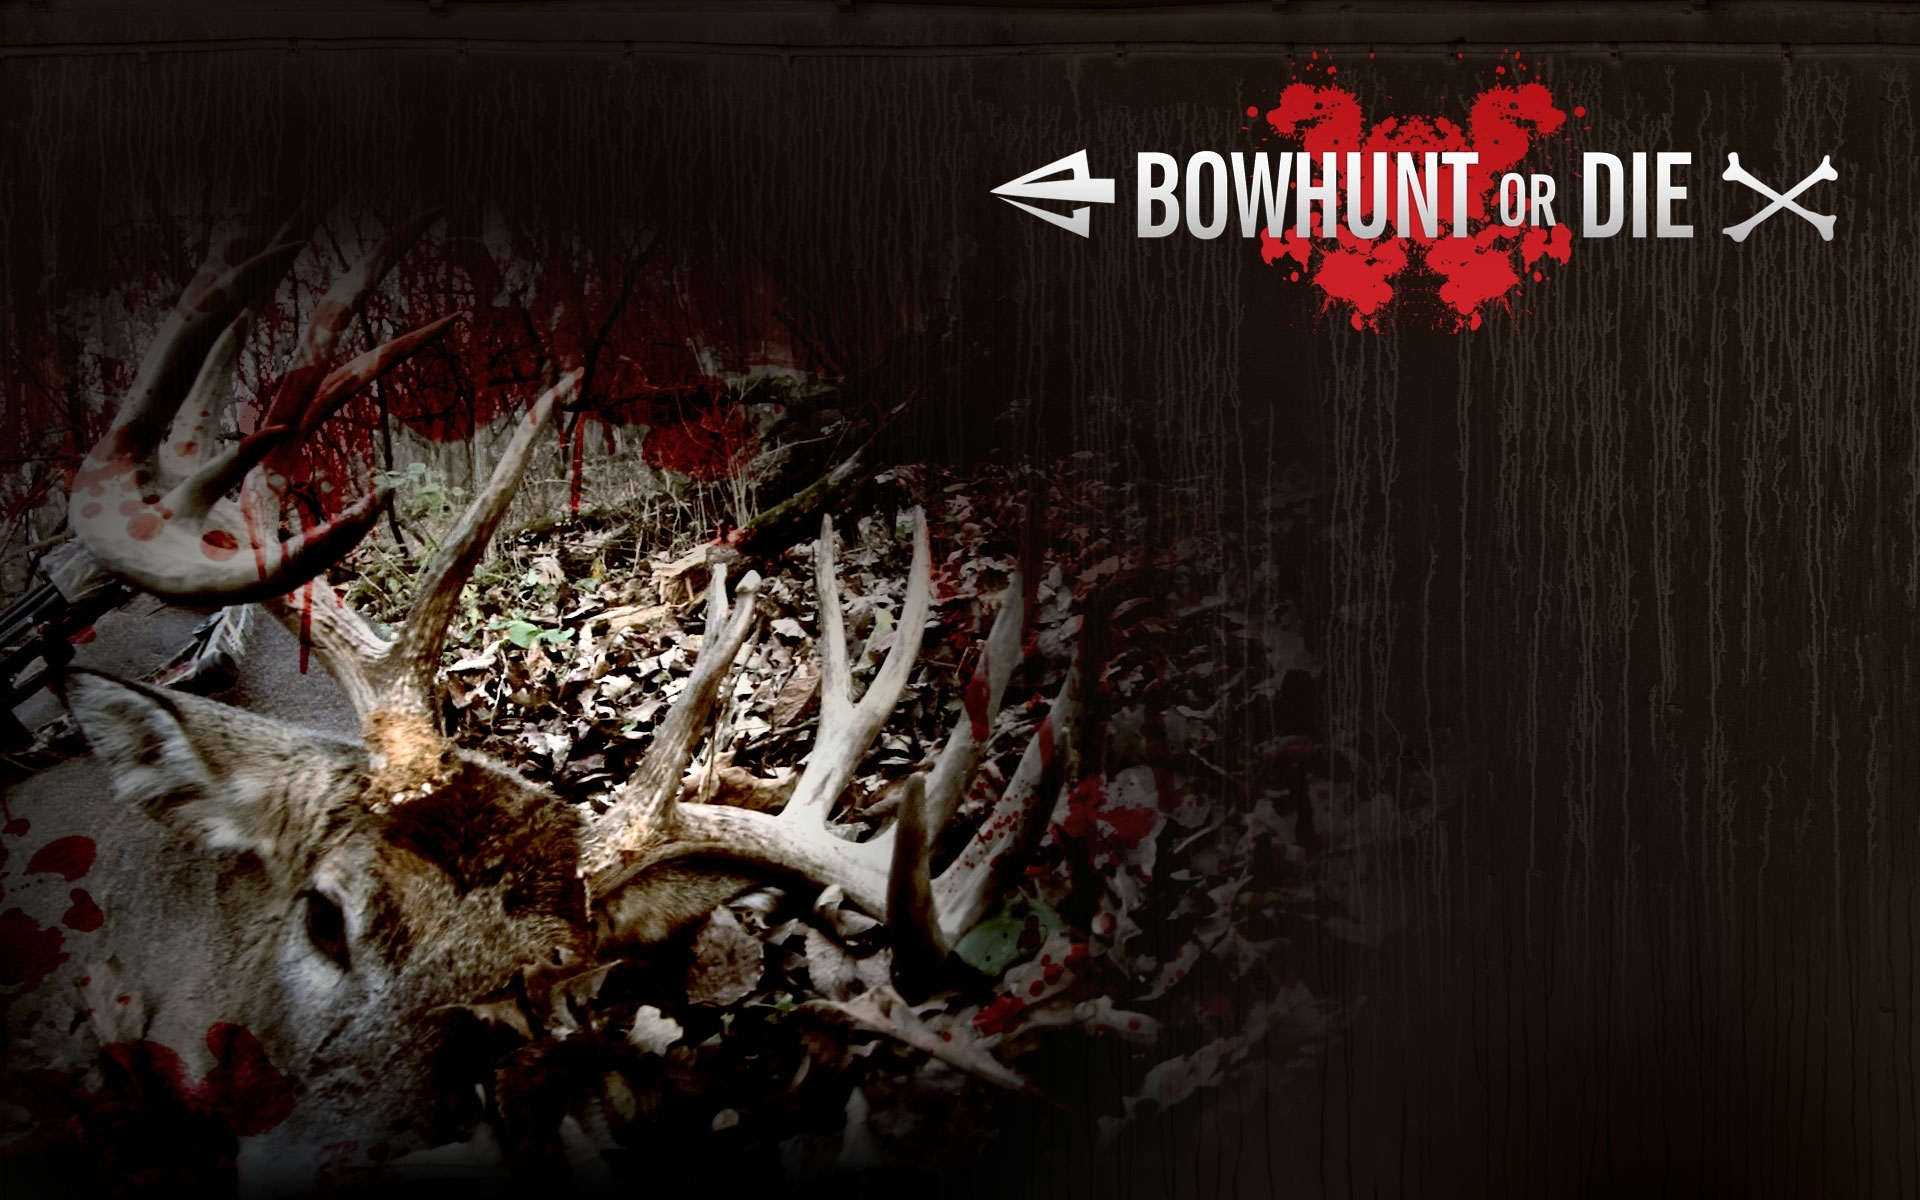 wallpapers archive | bowhunting